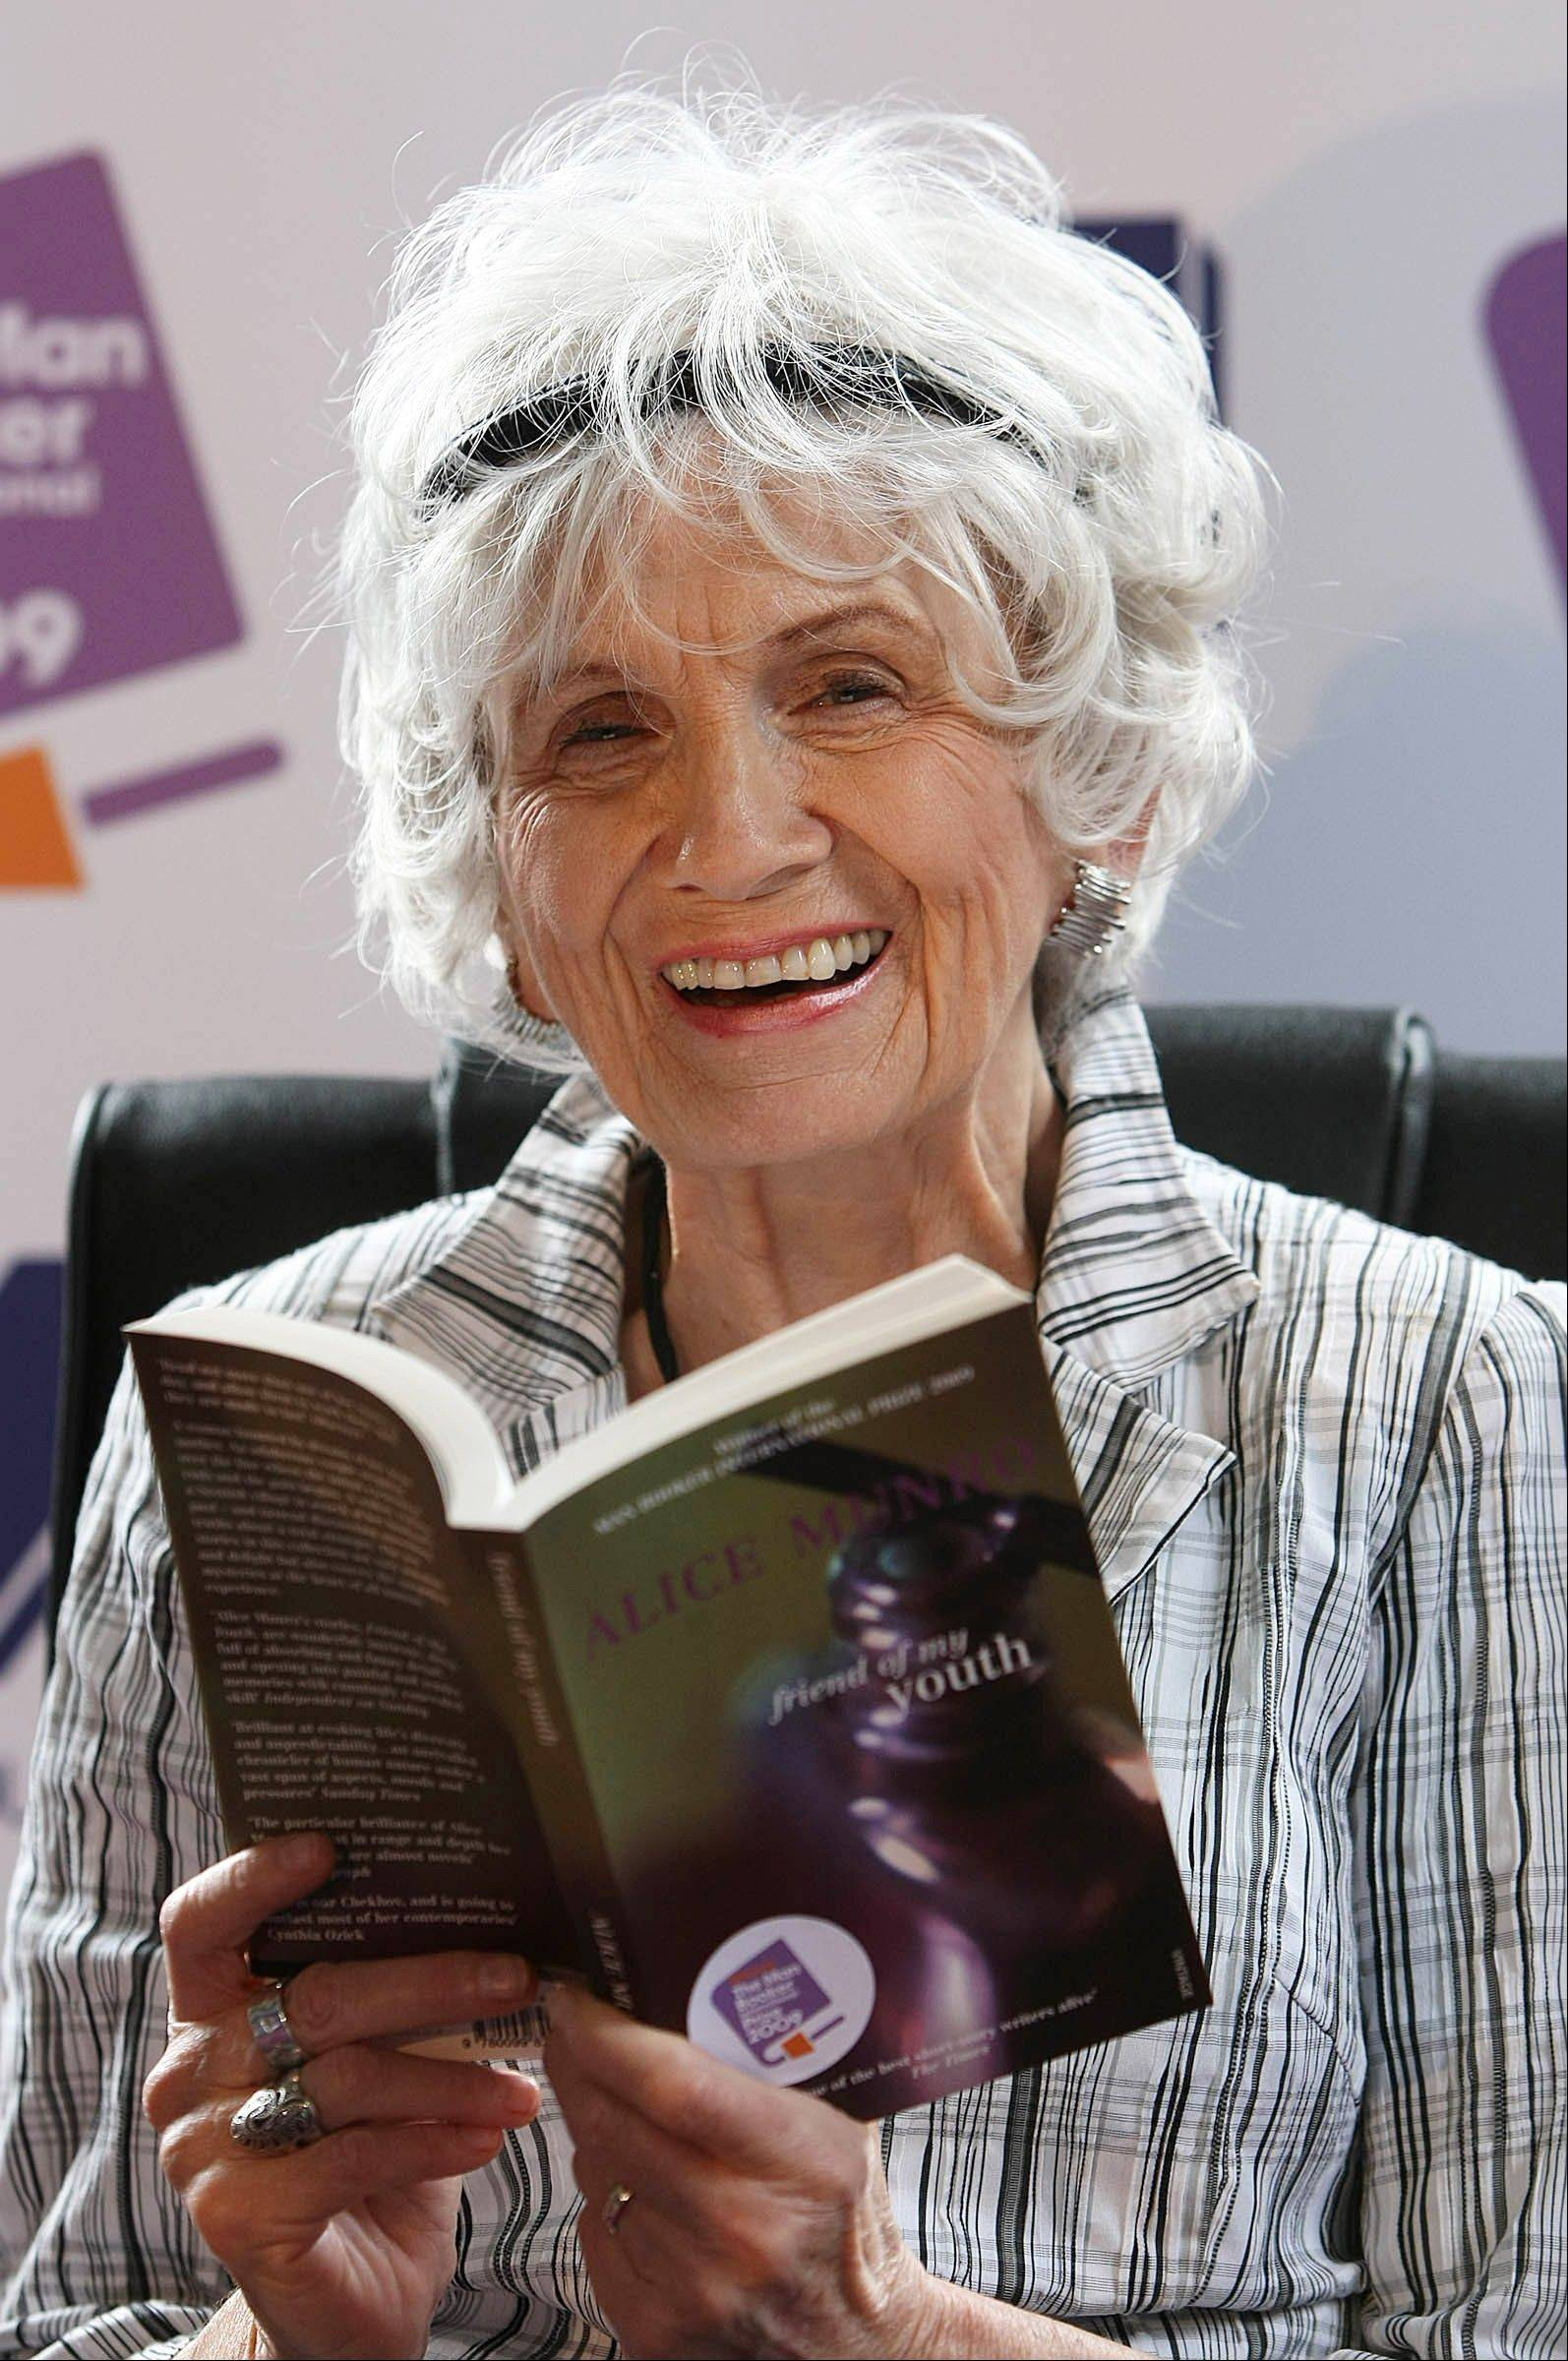 Canadian Author Alice Munro, widely regarded as one of the world�s greatest short story writers, told the National Post during a recent interview that she was �probably not going to write anymore.�